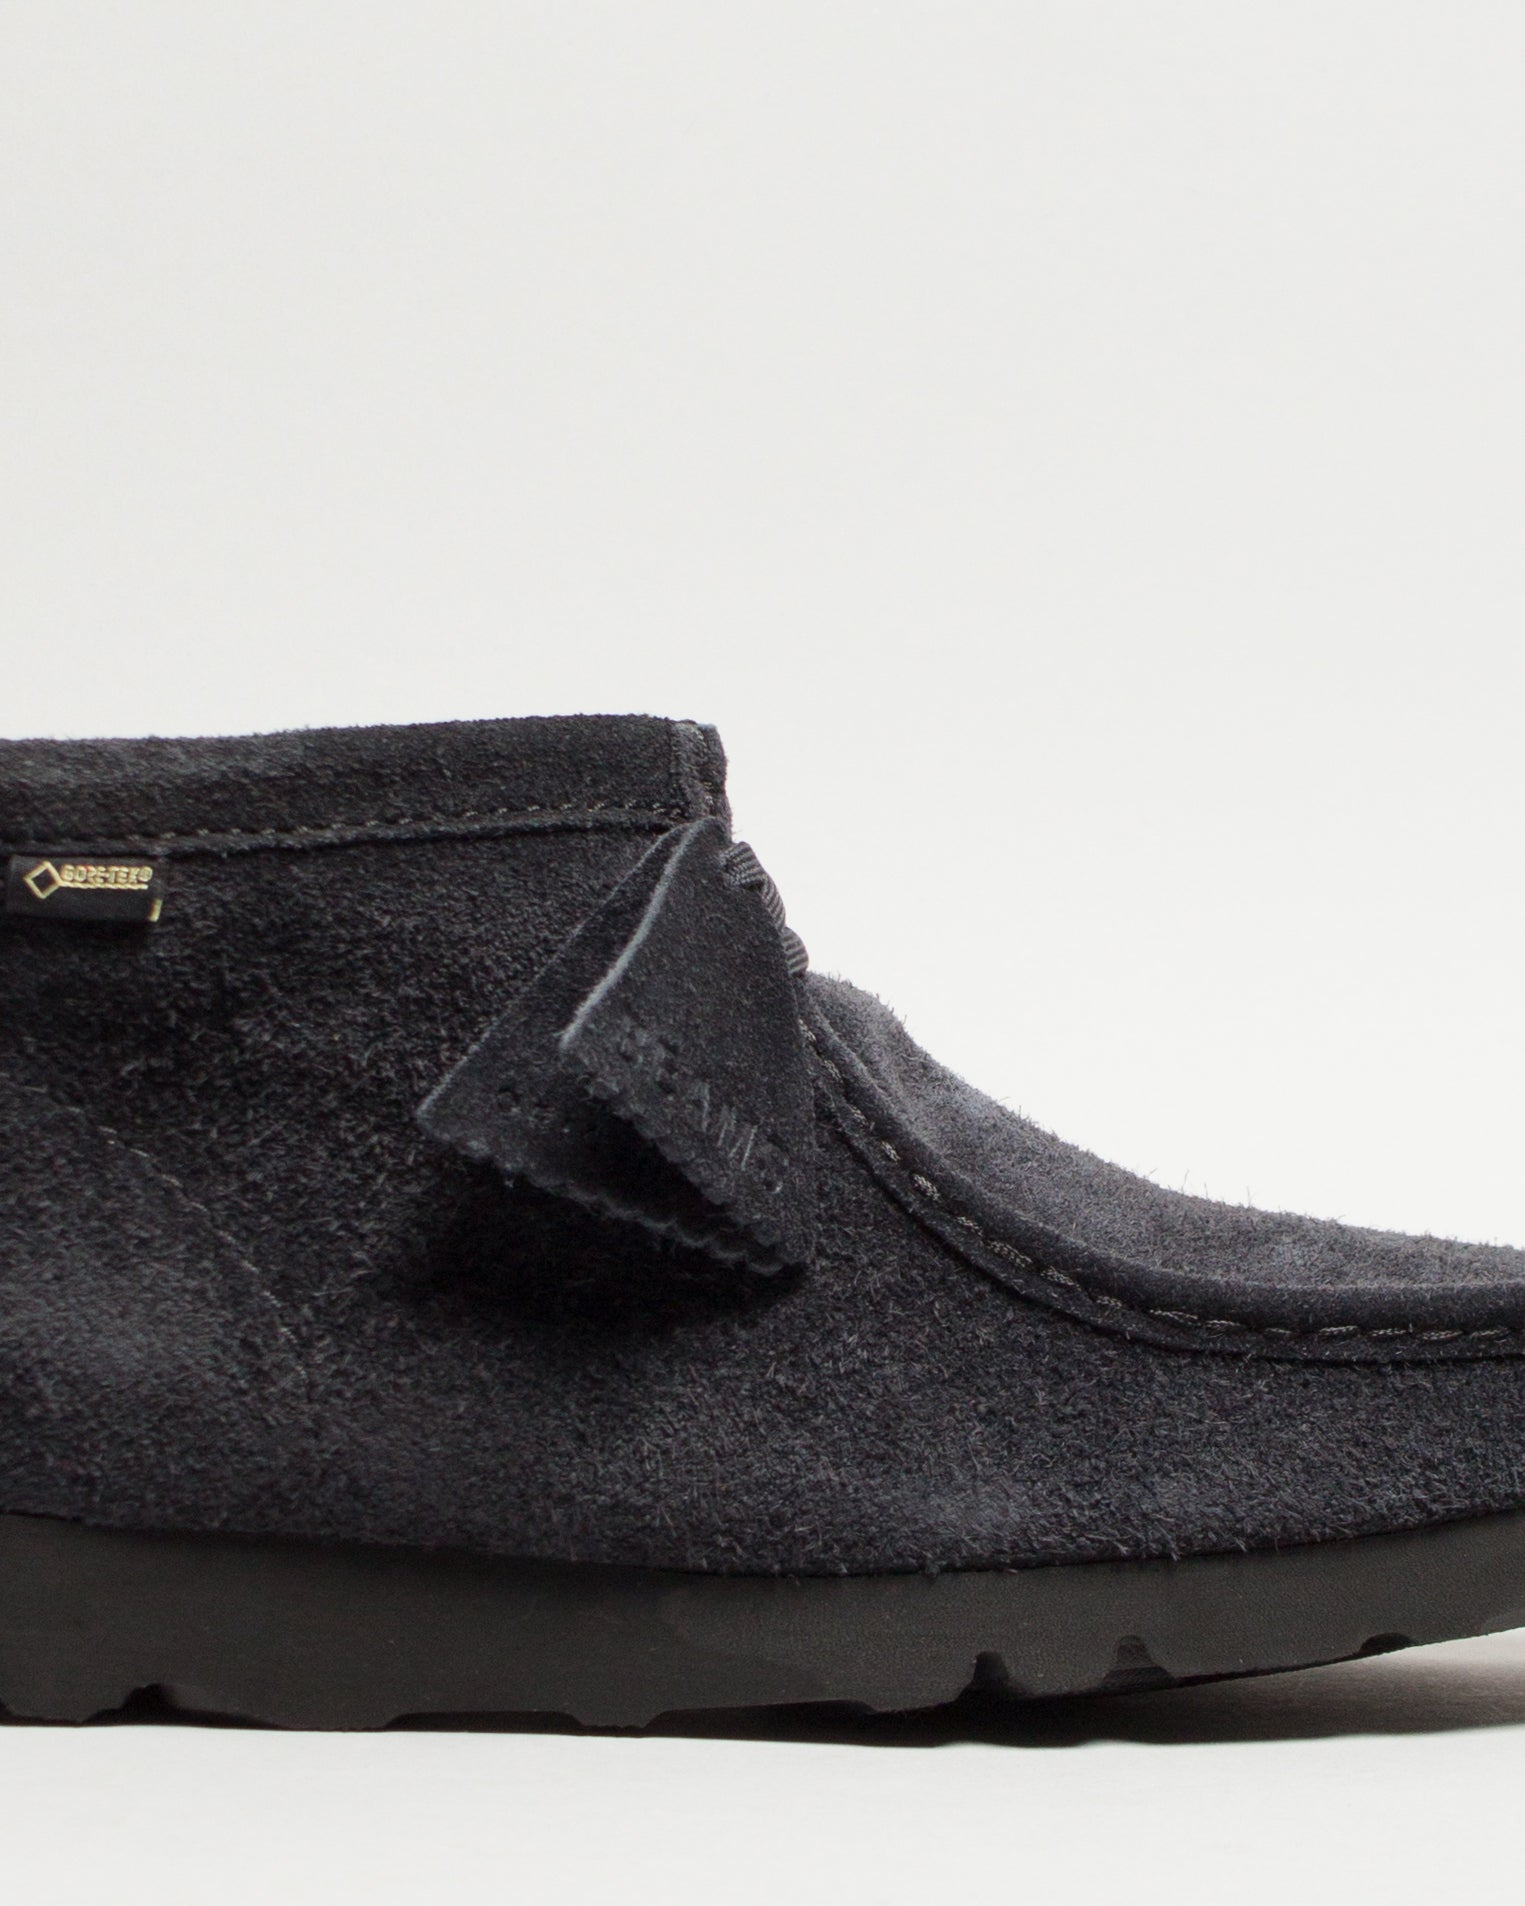 BEAMS Wallabee BT GTX Navy